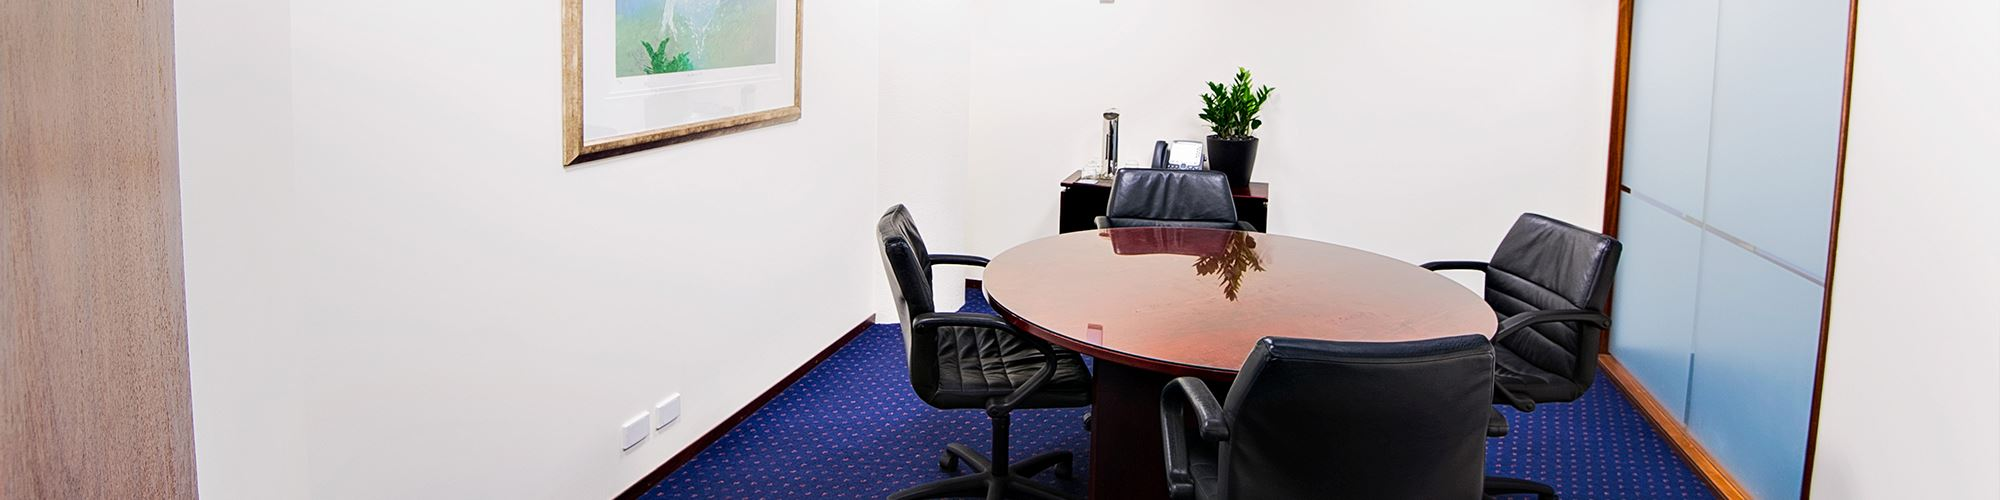 banner-riparian-plaza-brisbane-meeting-room.jpg